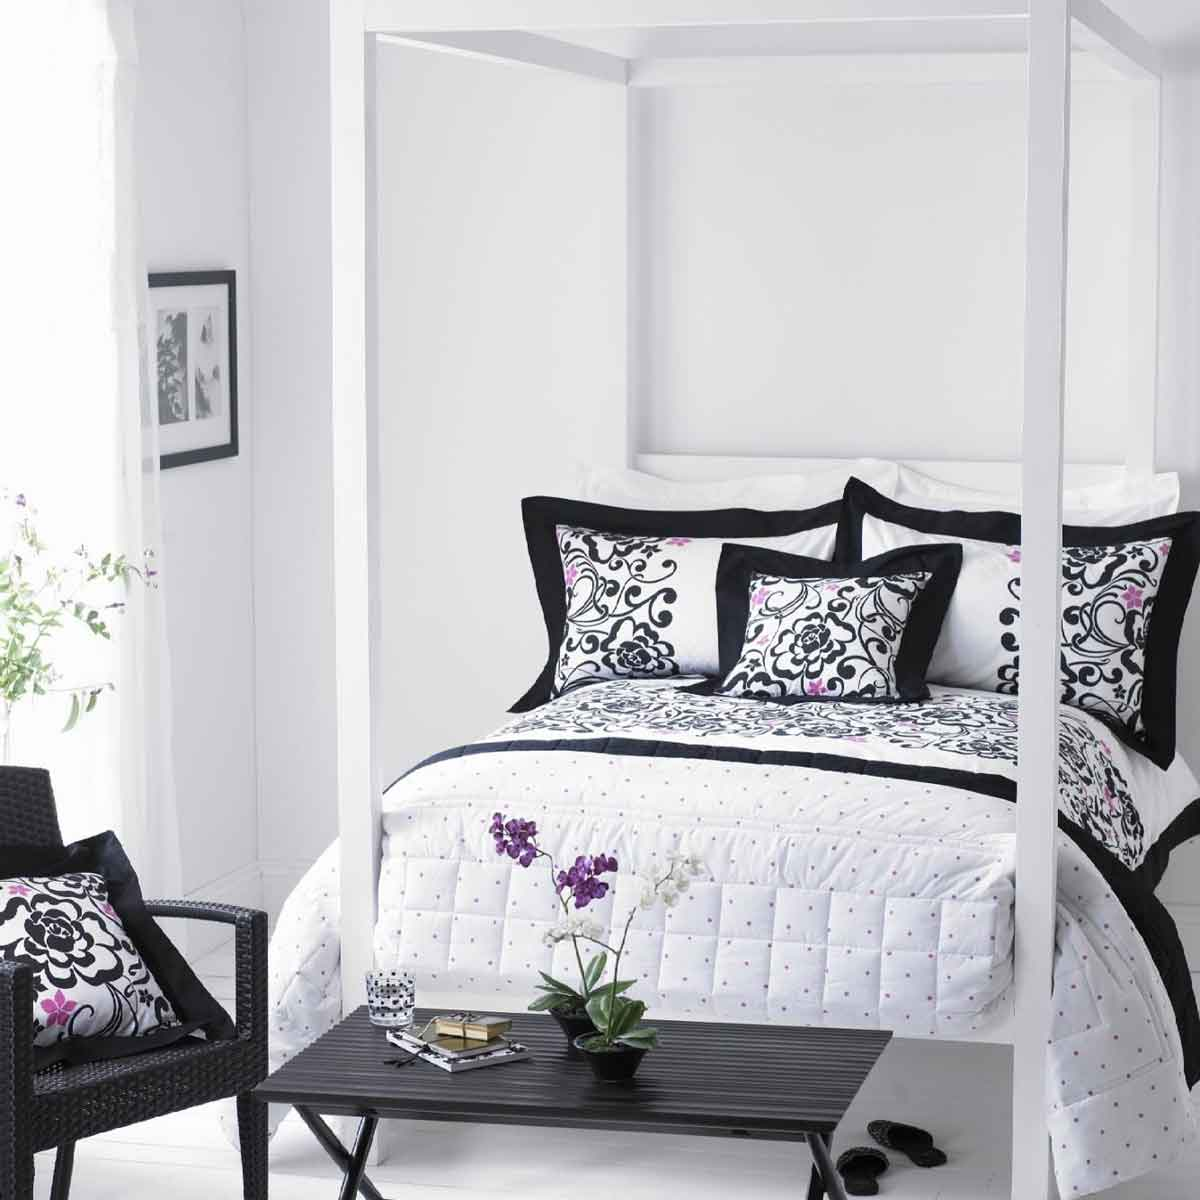 Modern black and white bedroom ideas for Bedroom decorating ideas